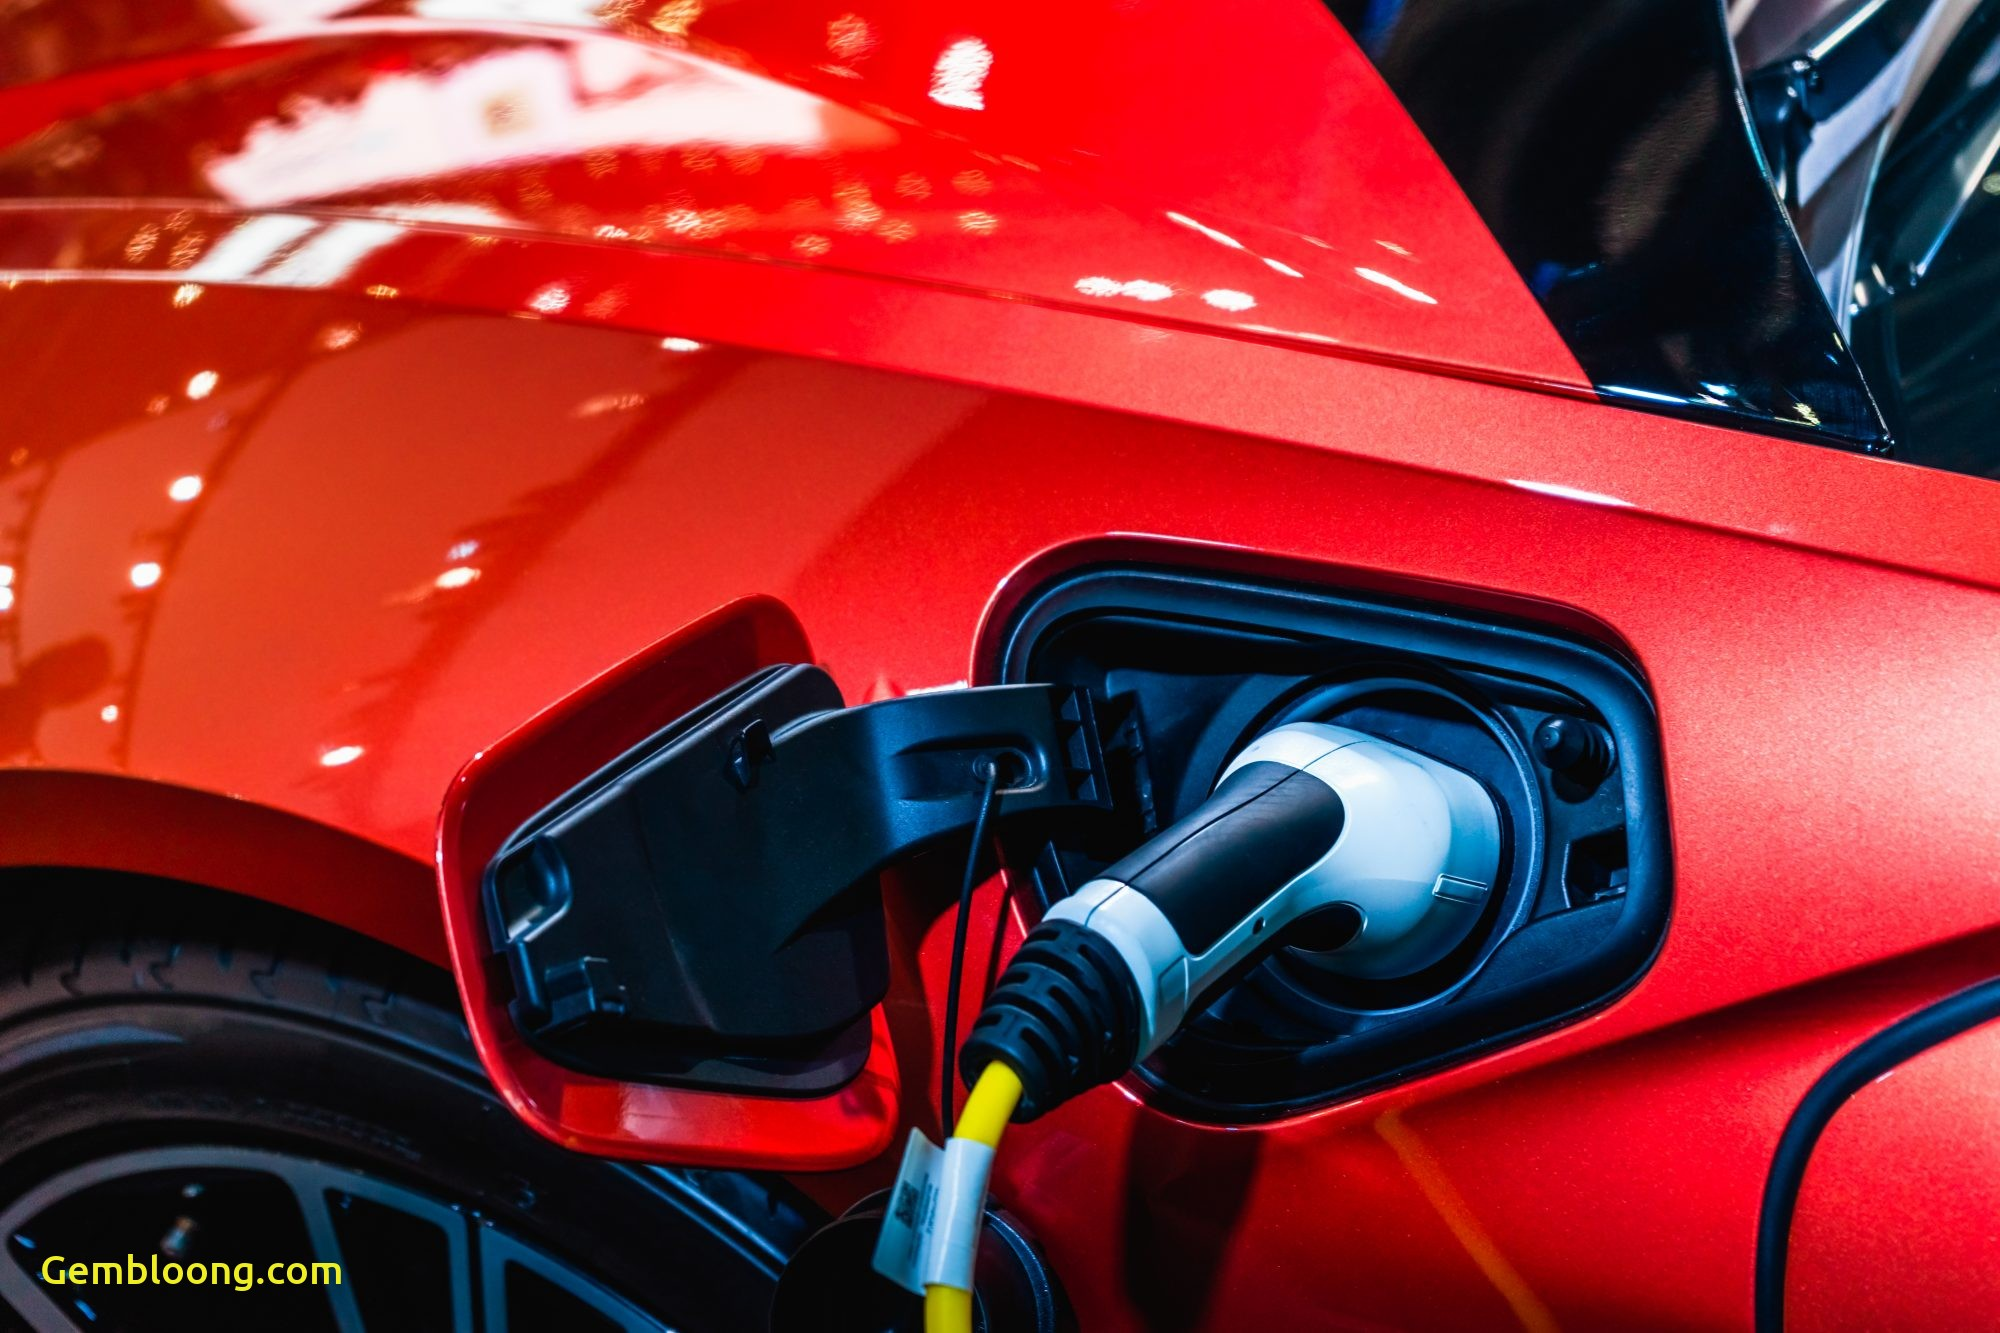 Used Car Reports Fresh Obelics the Development Of Next Generation Electric Vehicles